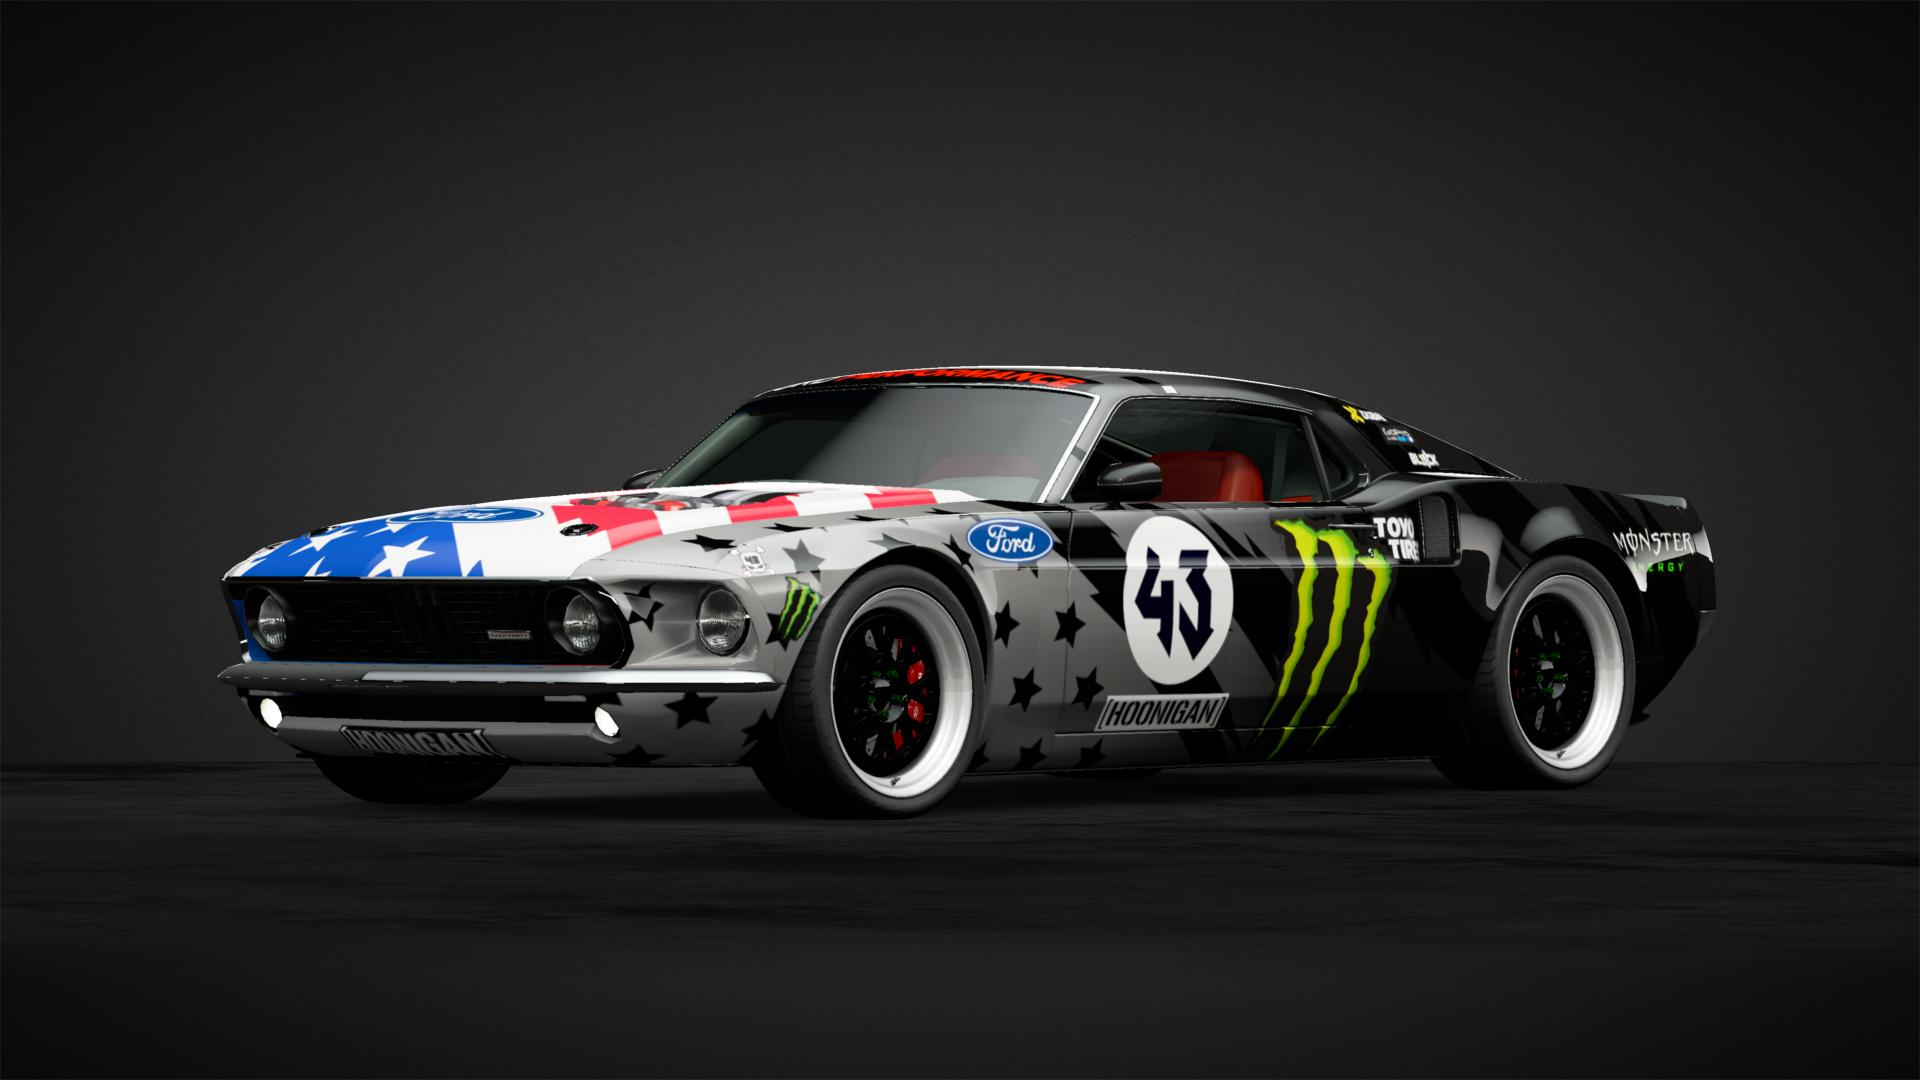 Ken Block Mustang Hoonicorn V1 - Car Livery by byZEBY